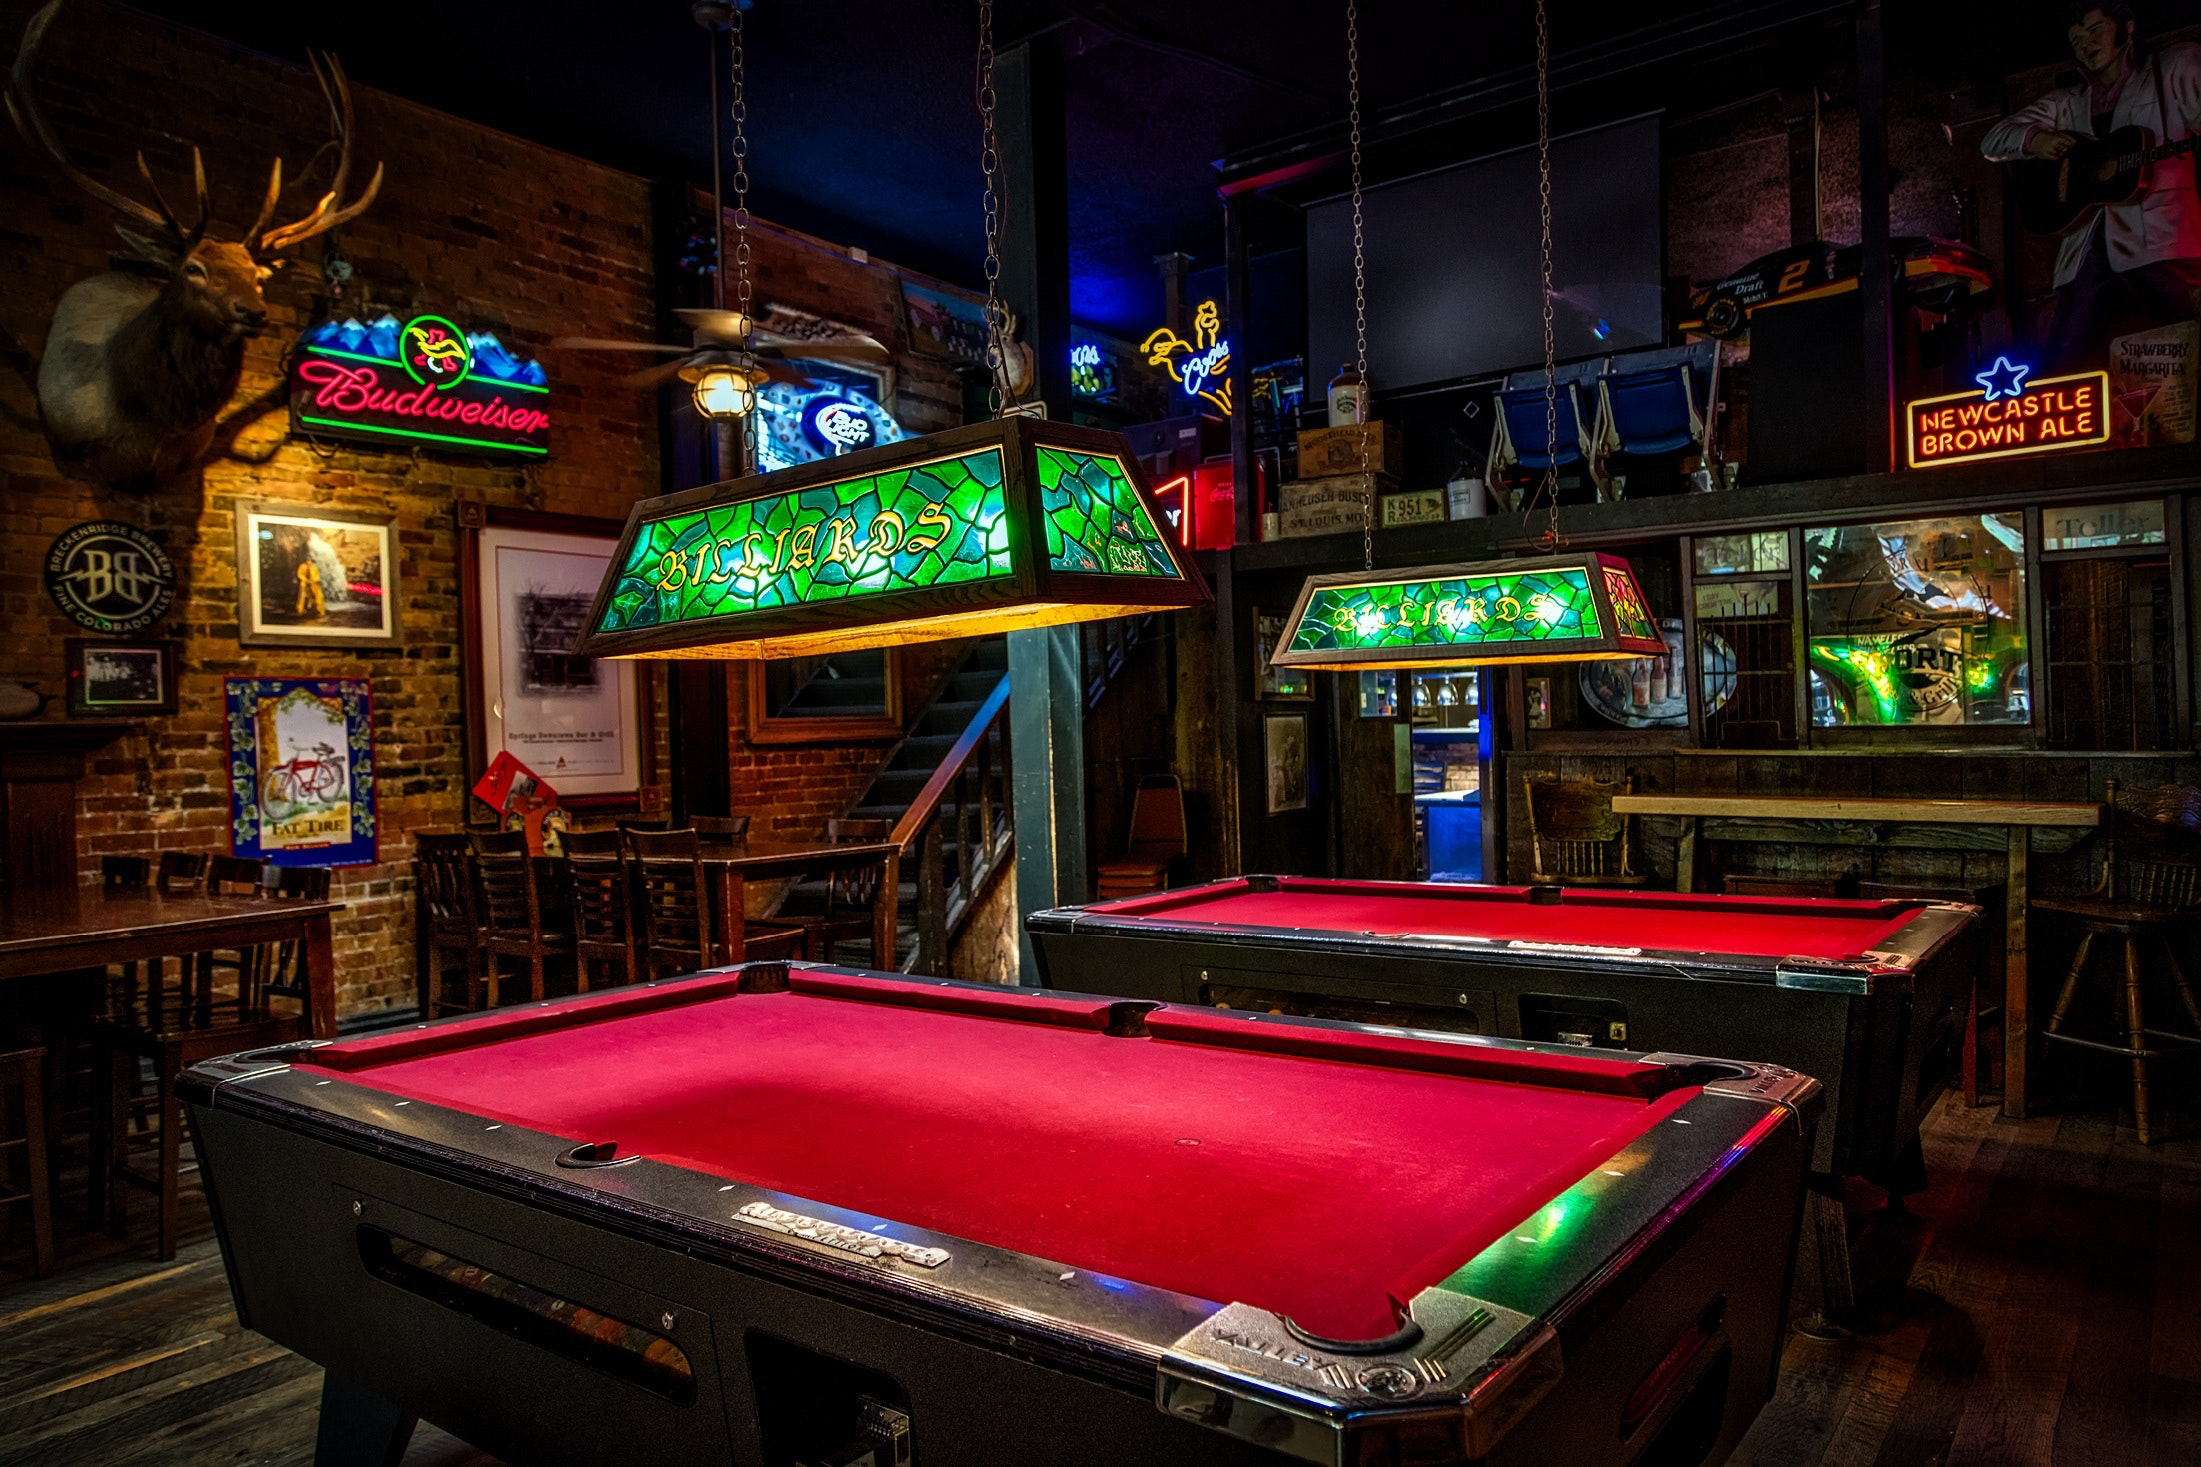 bar-billiards-gambling-261043